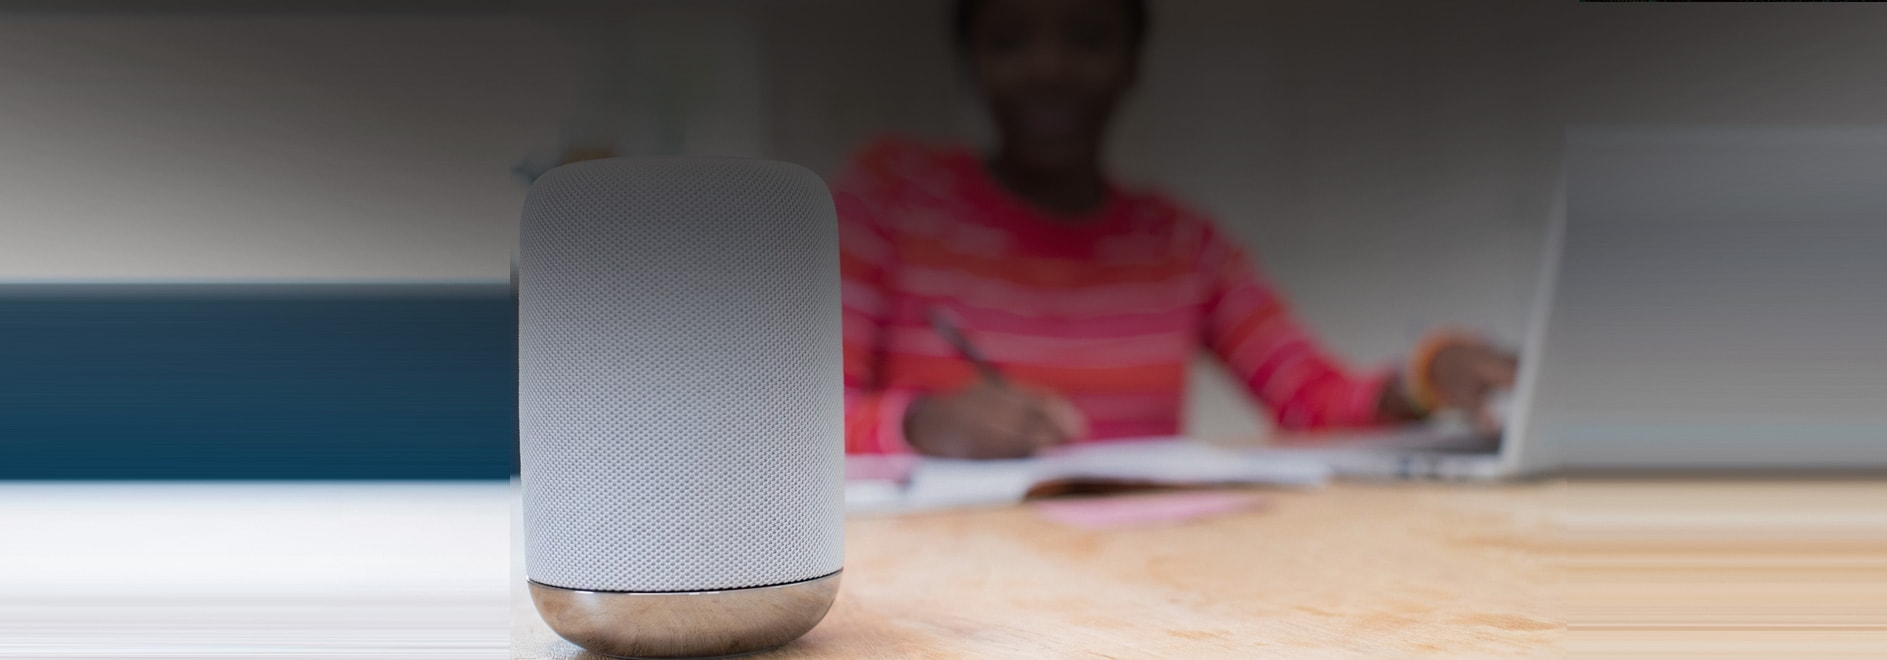 HOW DO I GET GOOGLE HOME TO FIND MY BUSINESS?